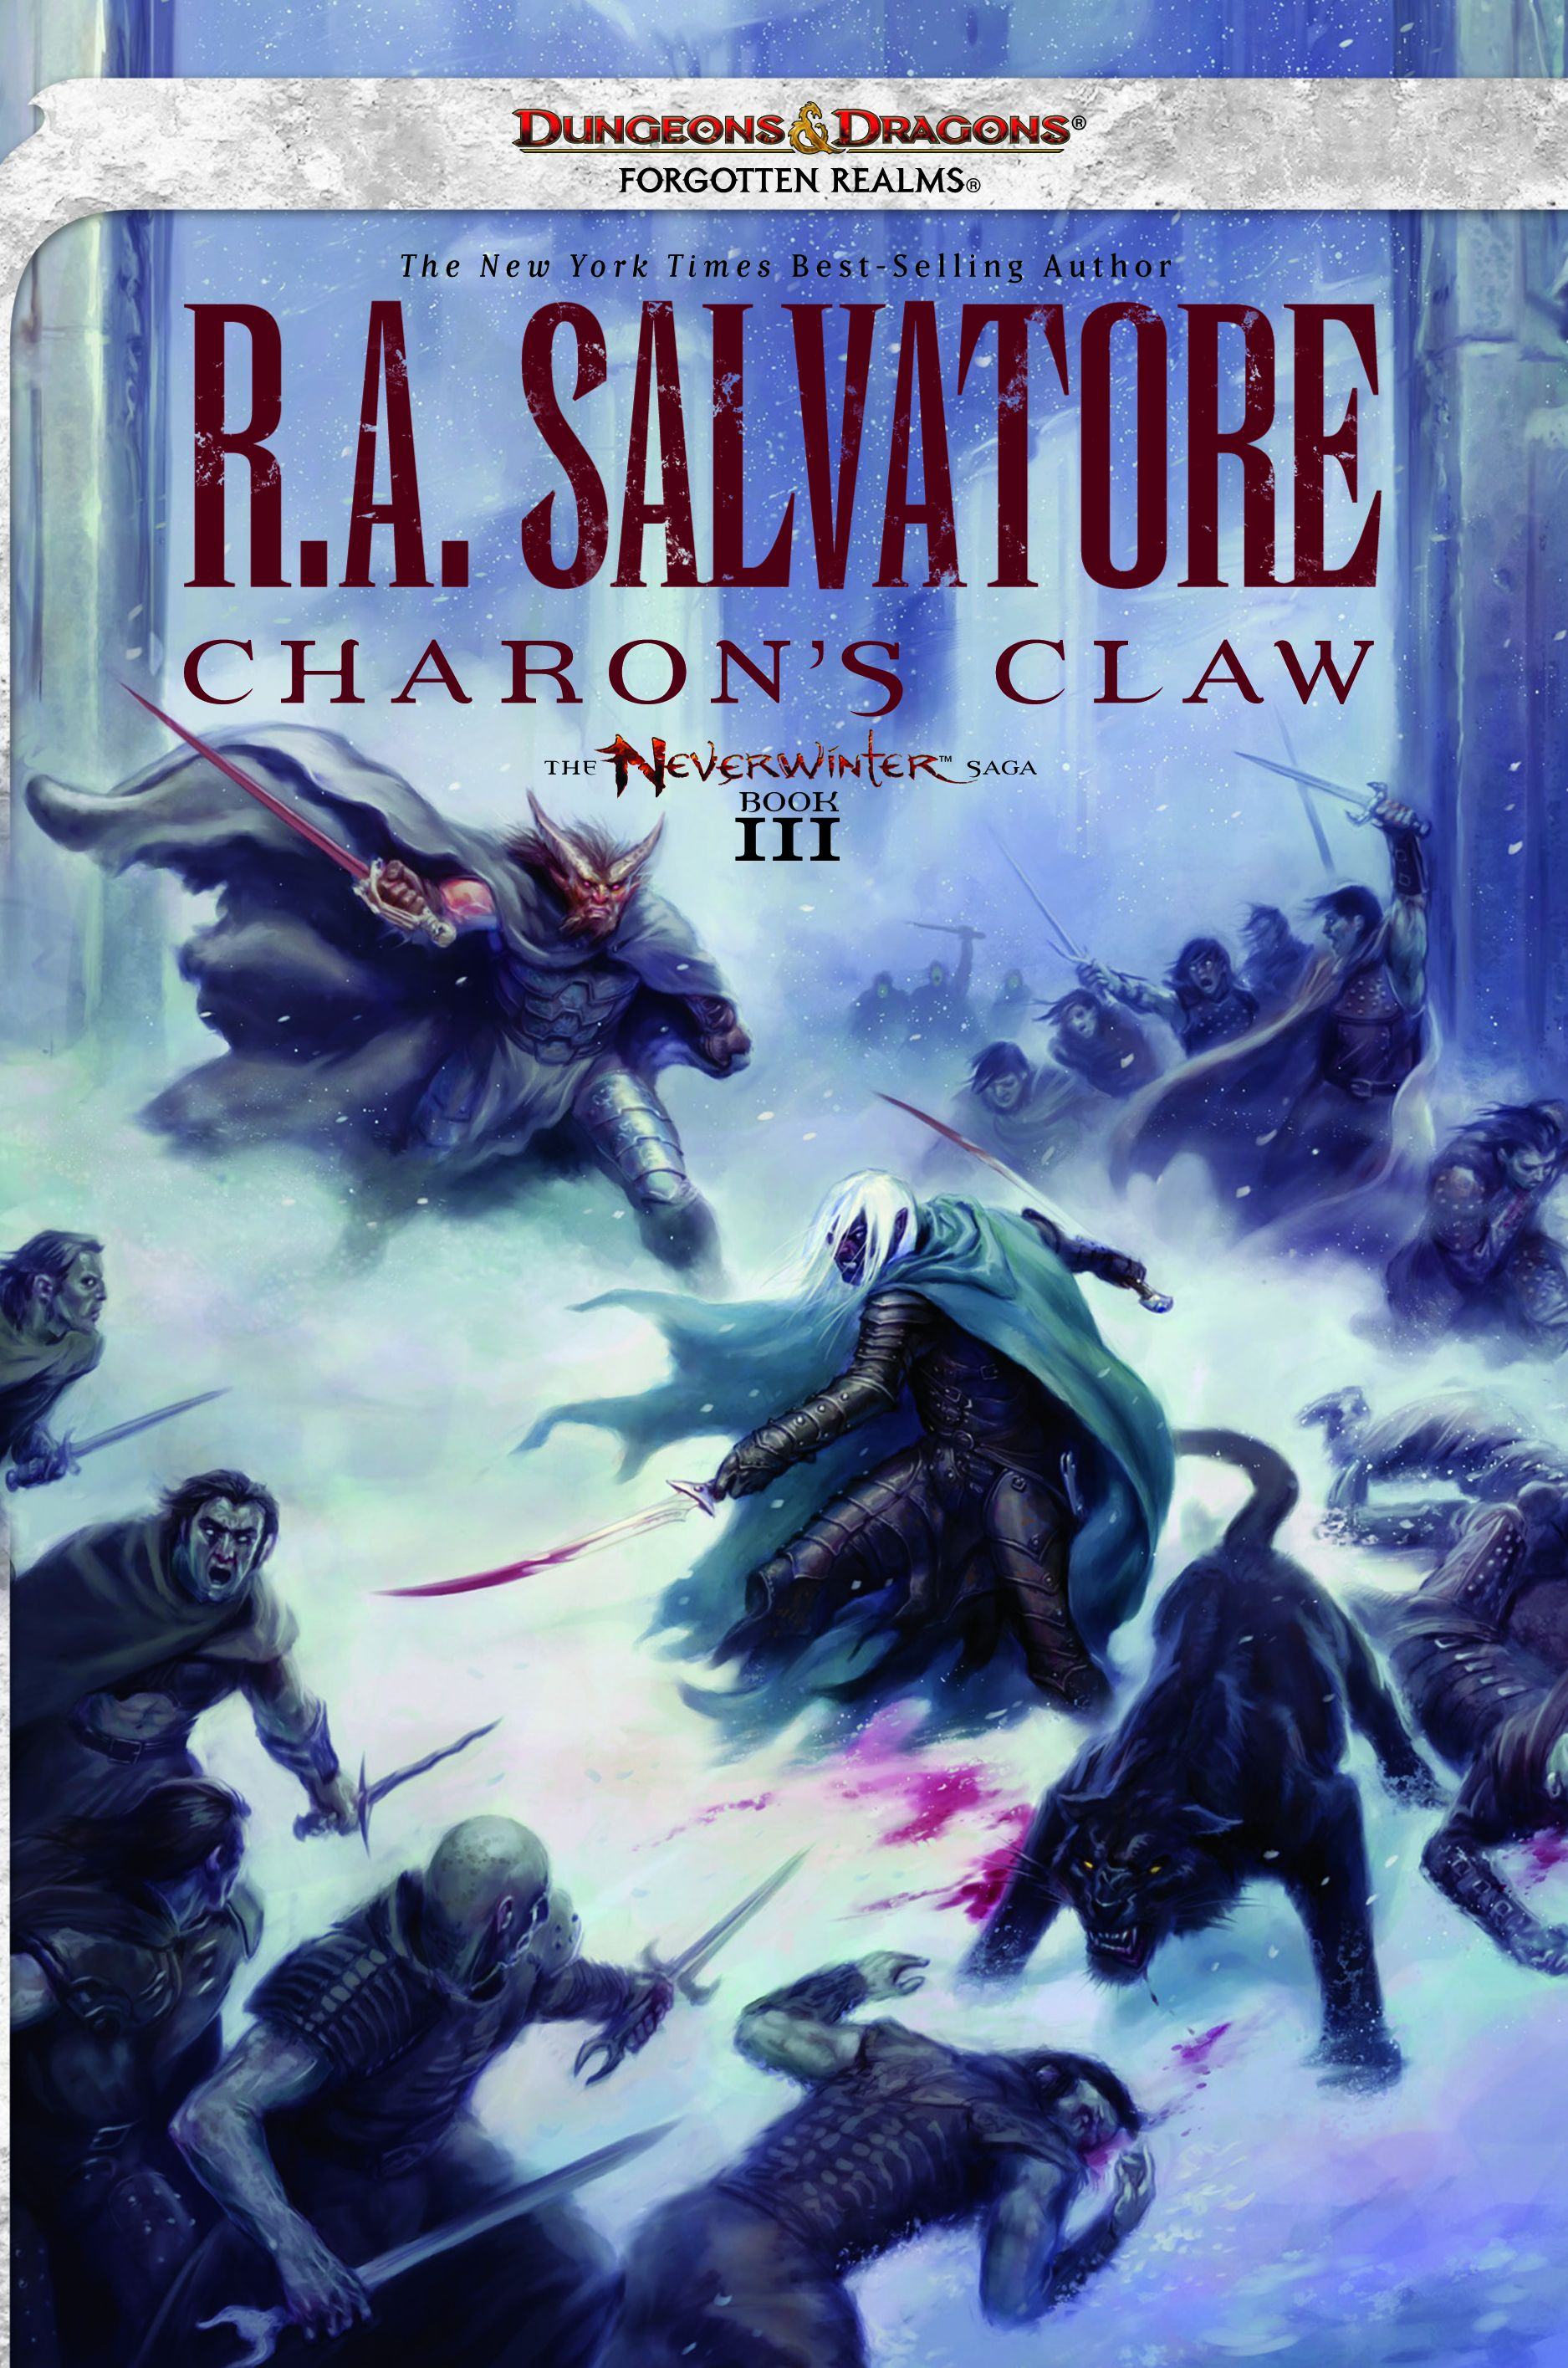 R A Salvatores Charons Claw Cover Art